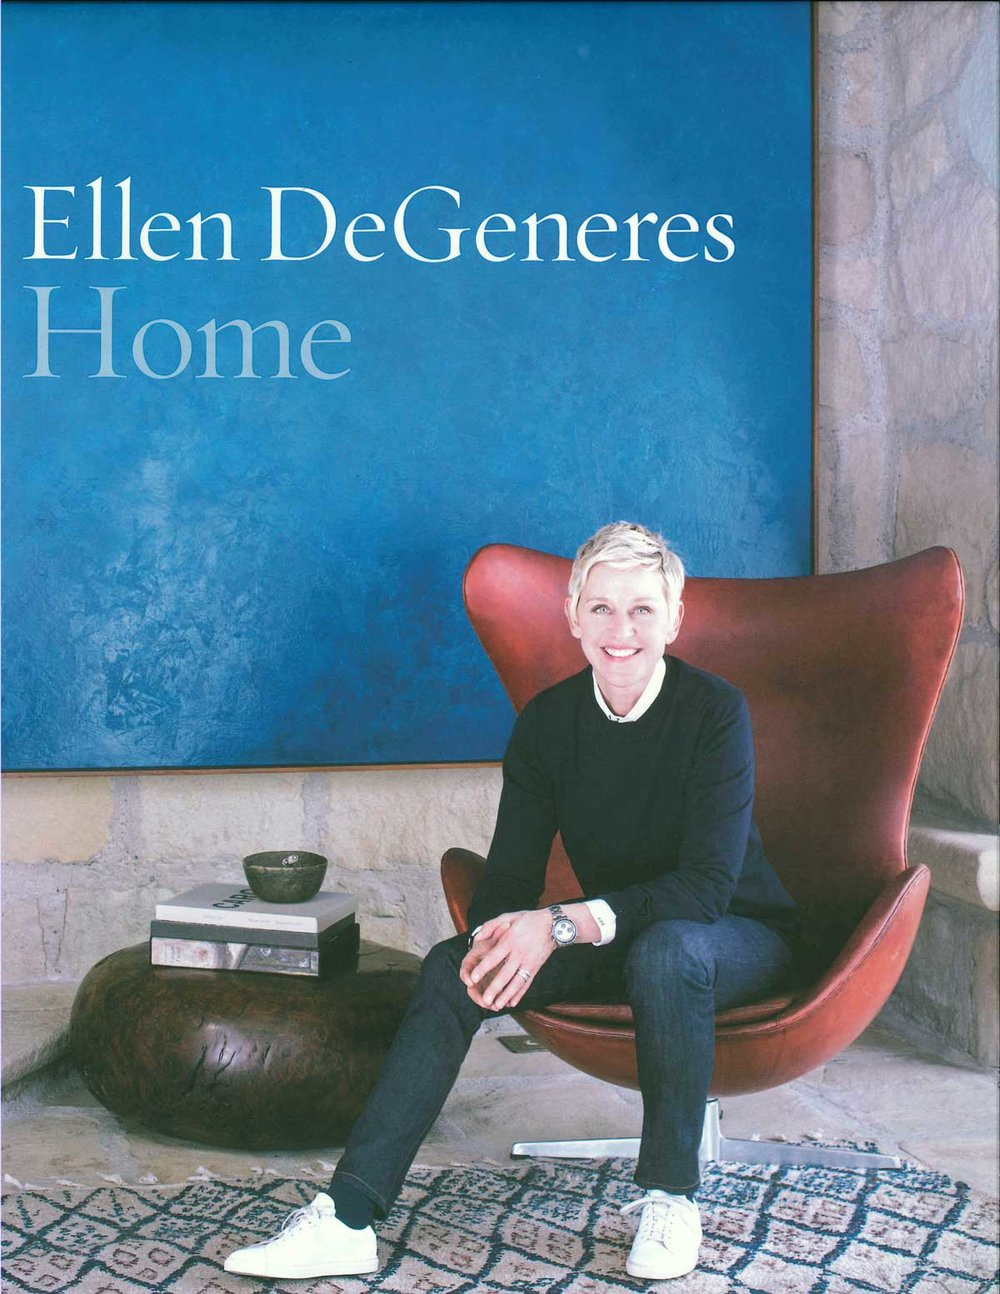 DEGENERES-Book-Cover.jpg